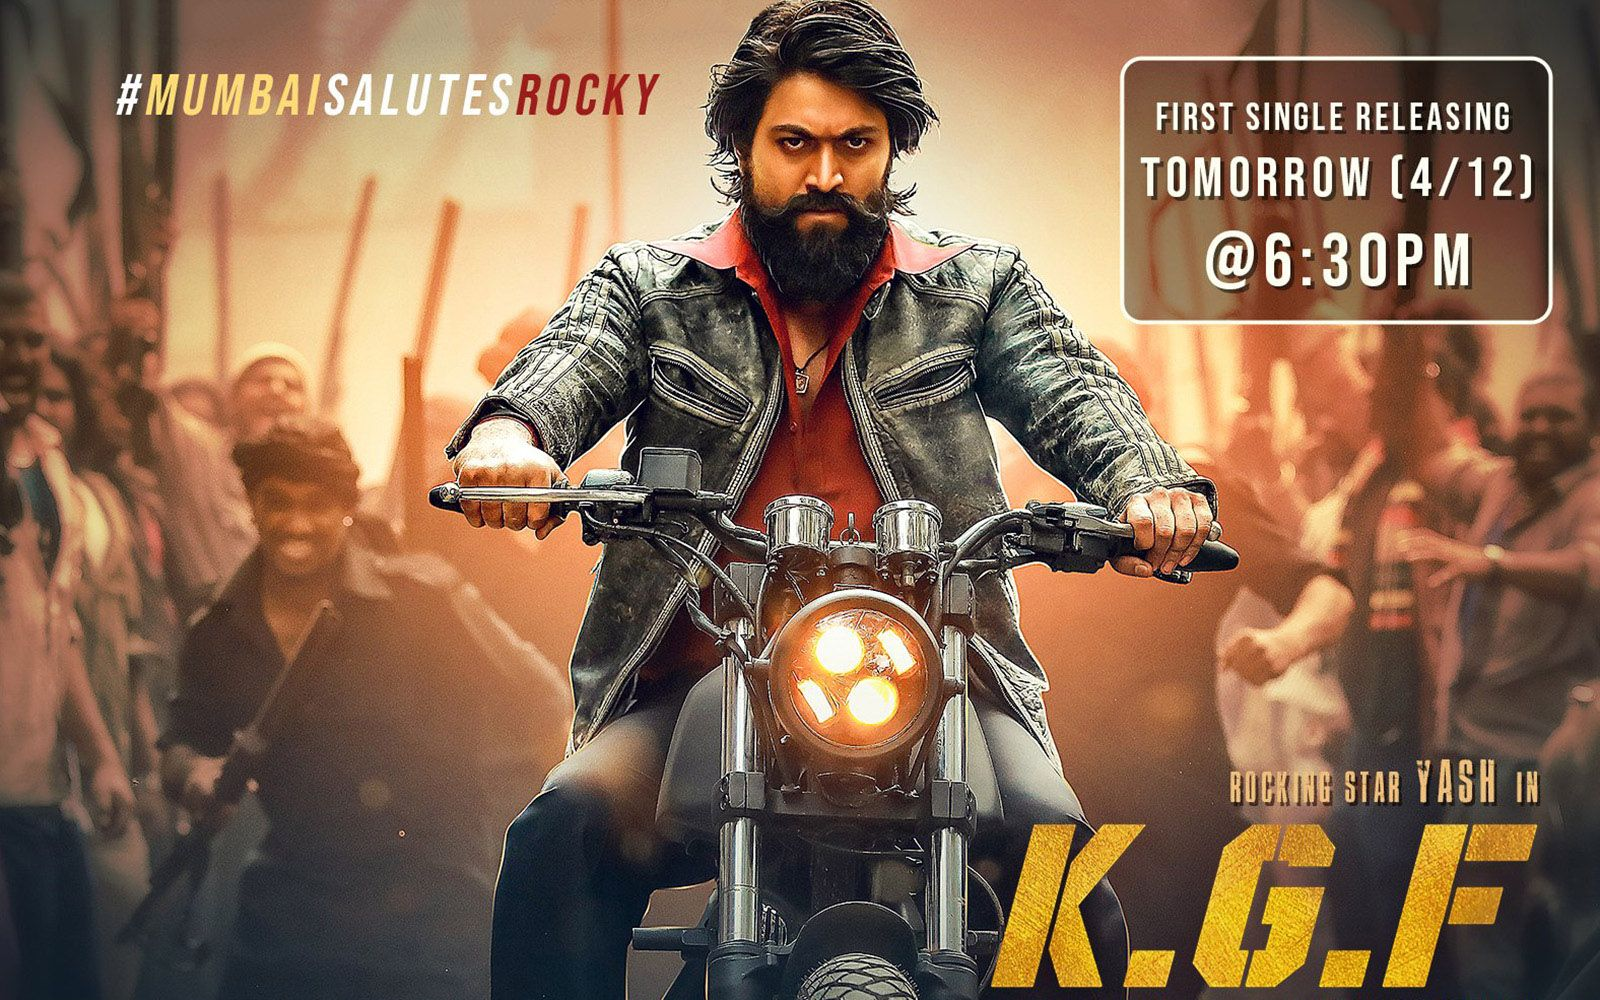 KGF Movie HD Wallpapers Download - HD Wallpapers | KGF in 2019 | Wallpaper downloads, Wallpaper ...